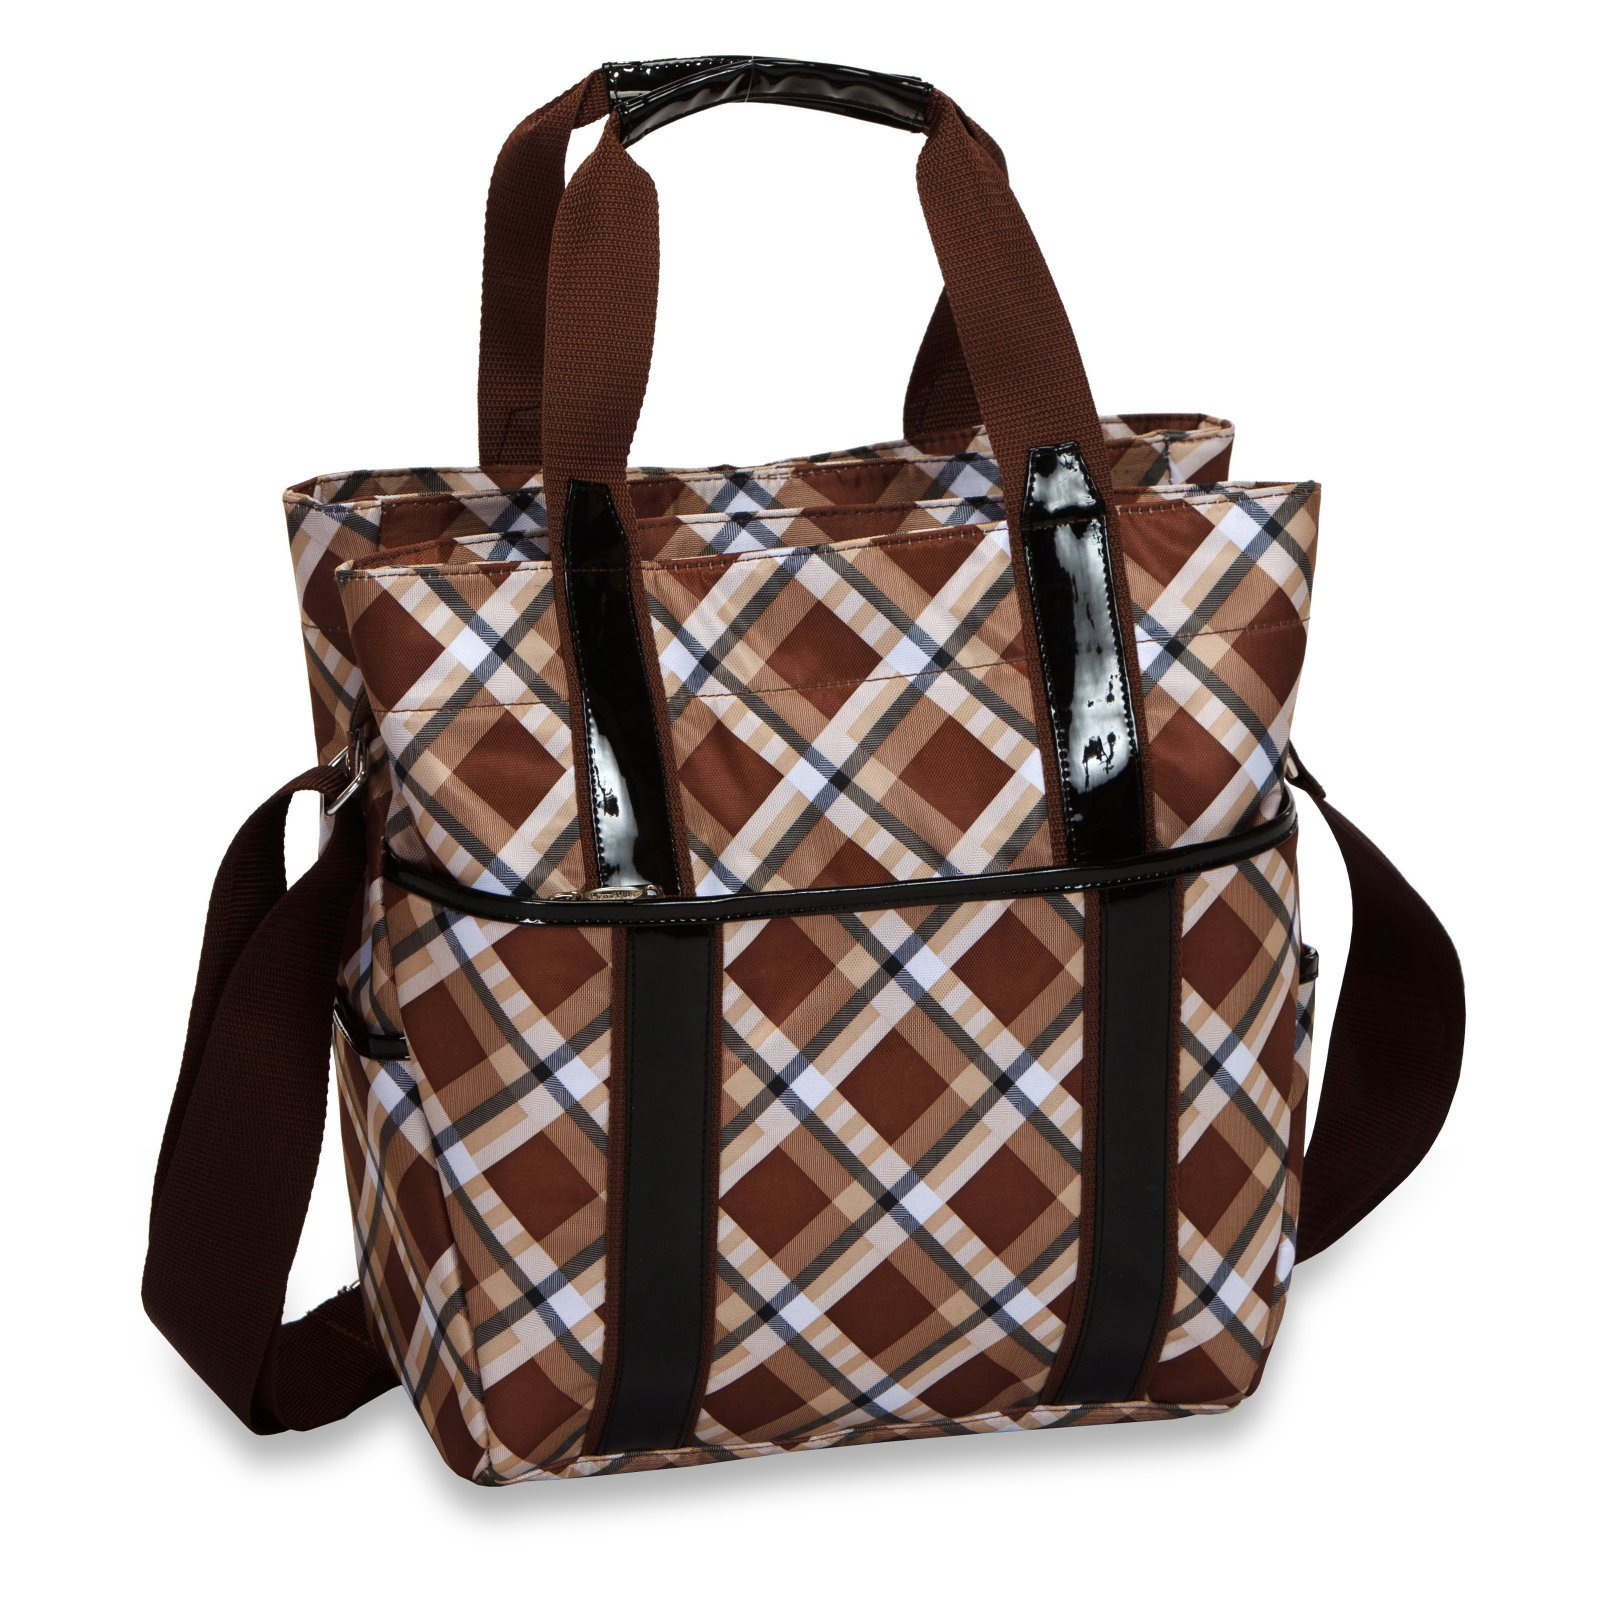 Picnic Plus Main Liner Lifestyle Cooler Bag - Saddle Plaid